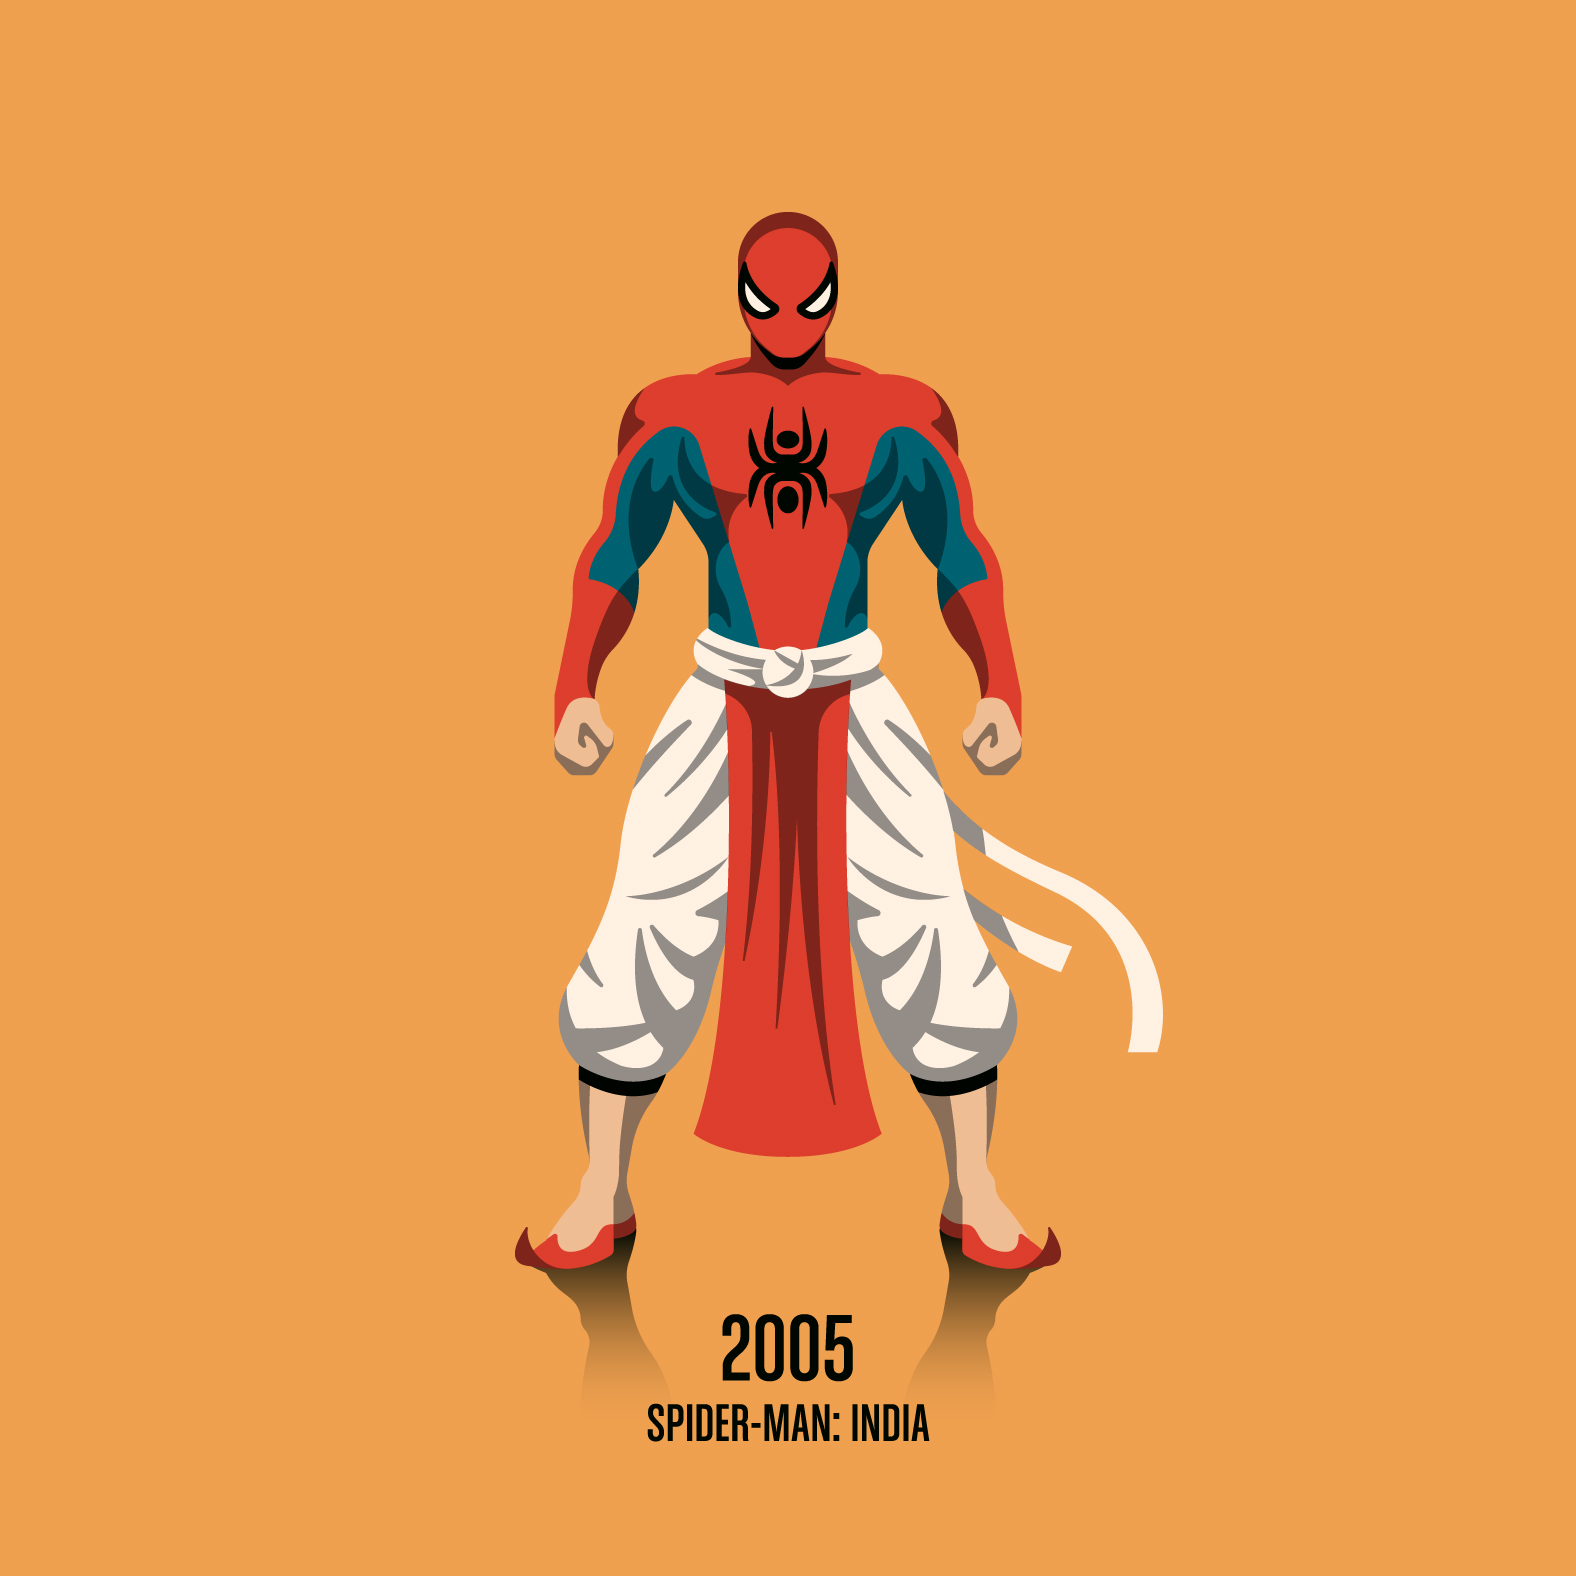 1_spiderman-80.jpg